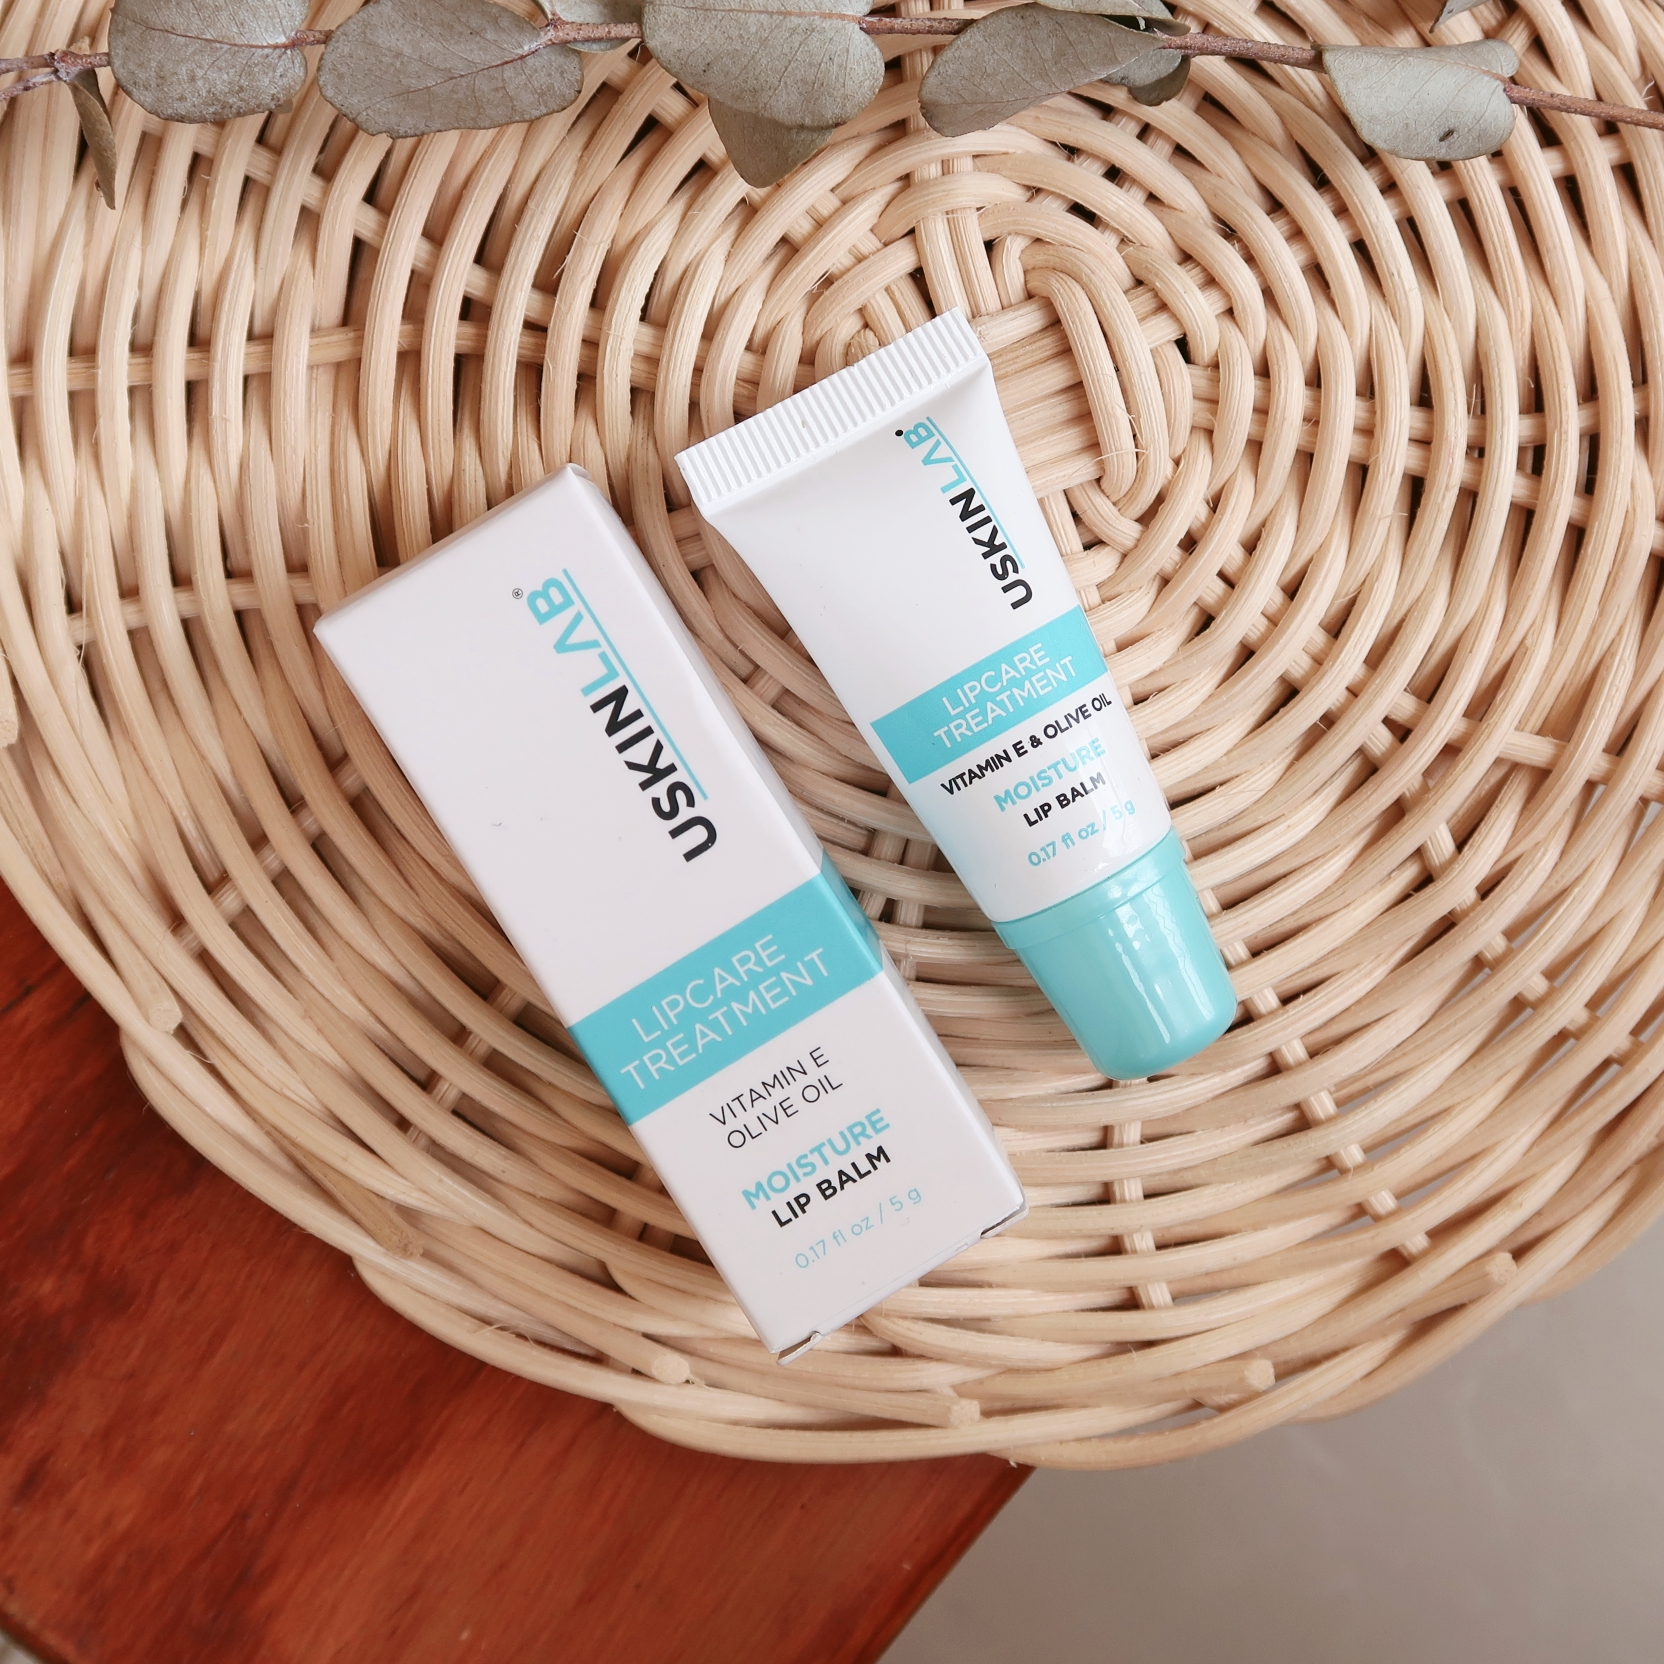 Kemasan USKINLAB Lip Care Treatment Moisture